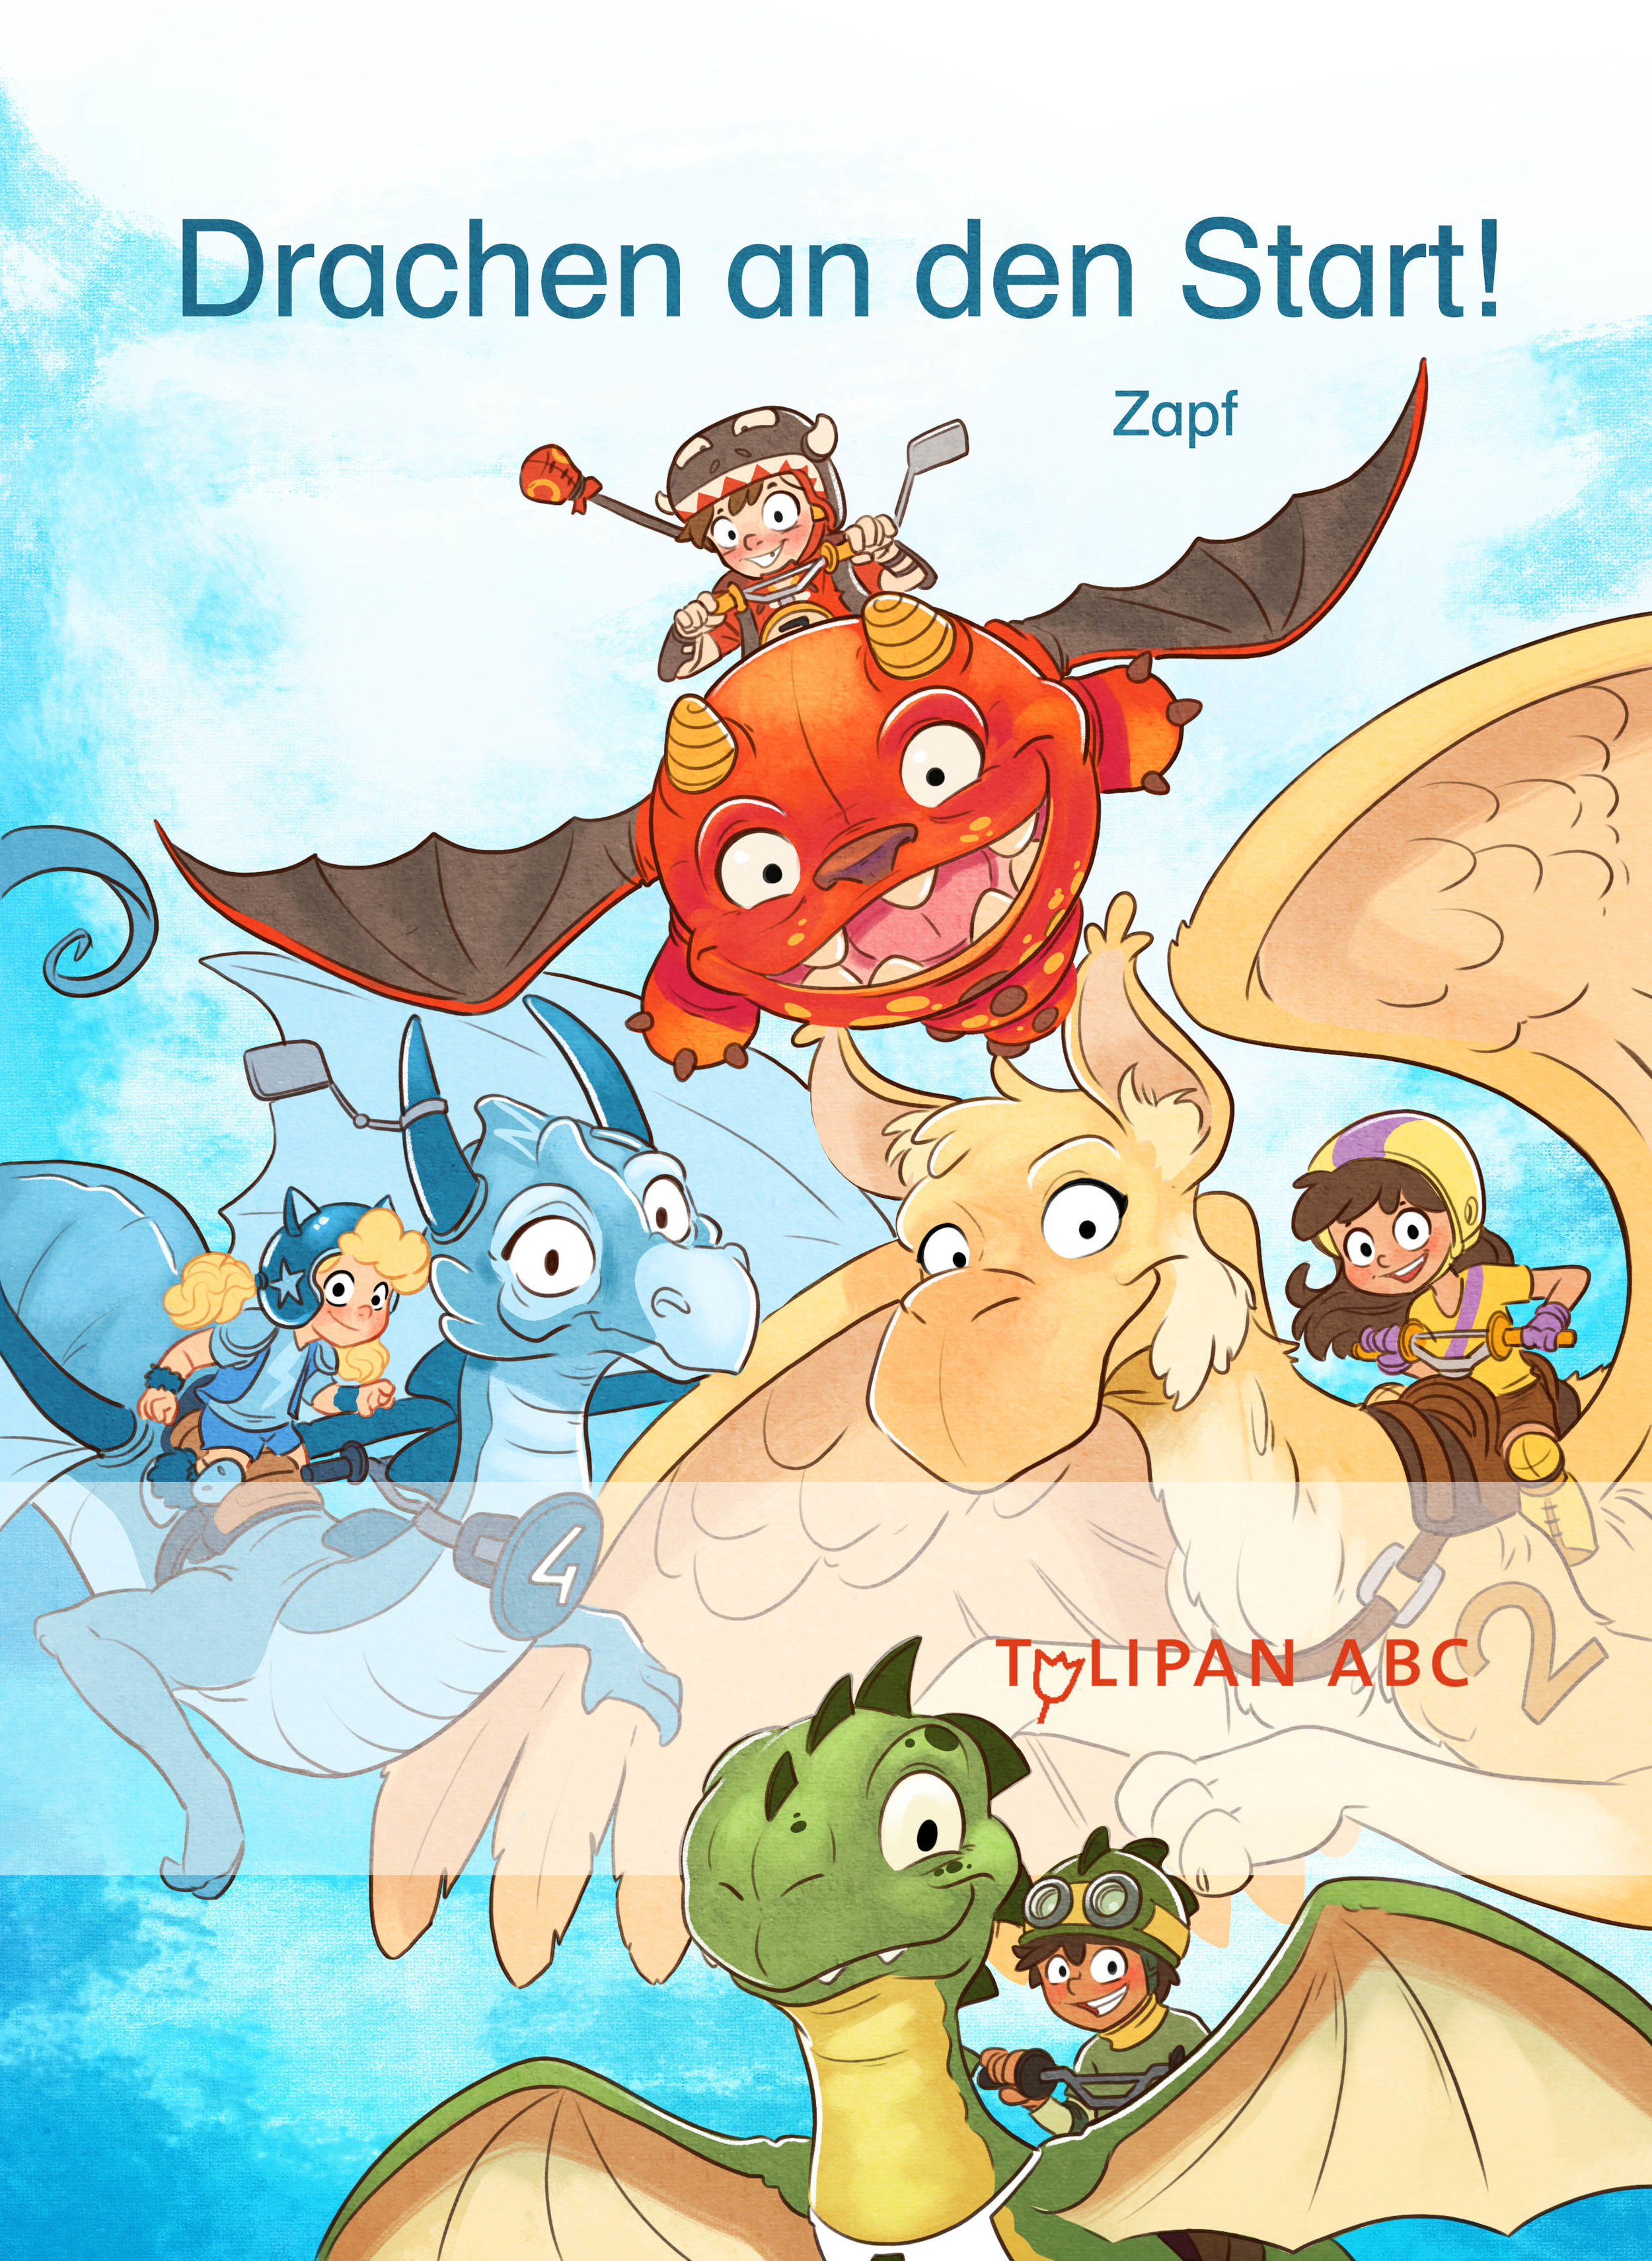 Drachen an den Start cover layout 3.jpg